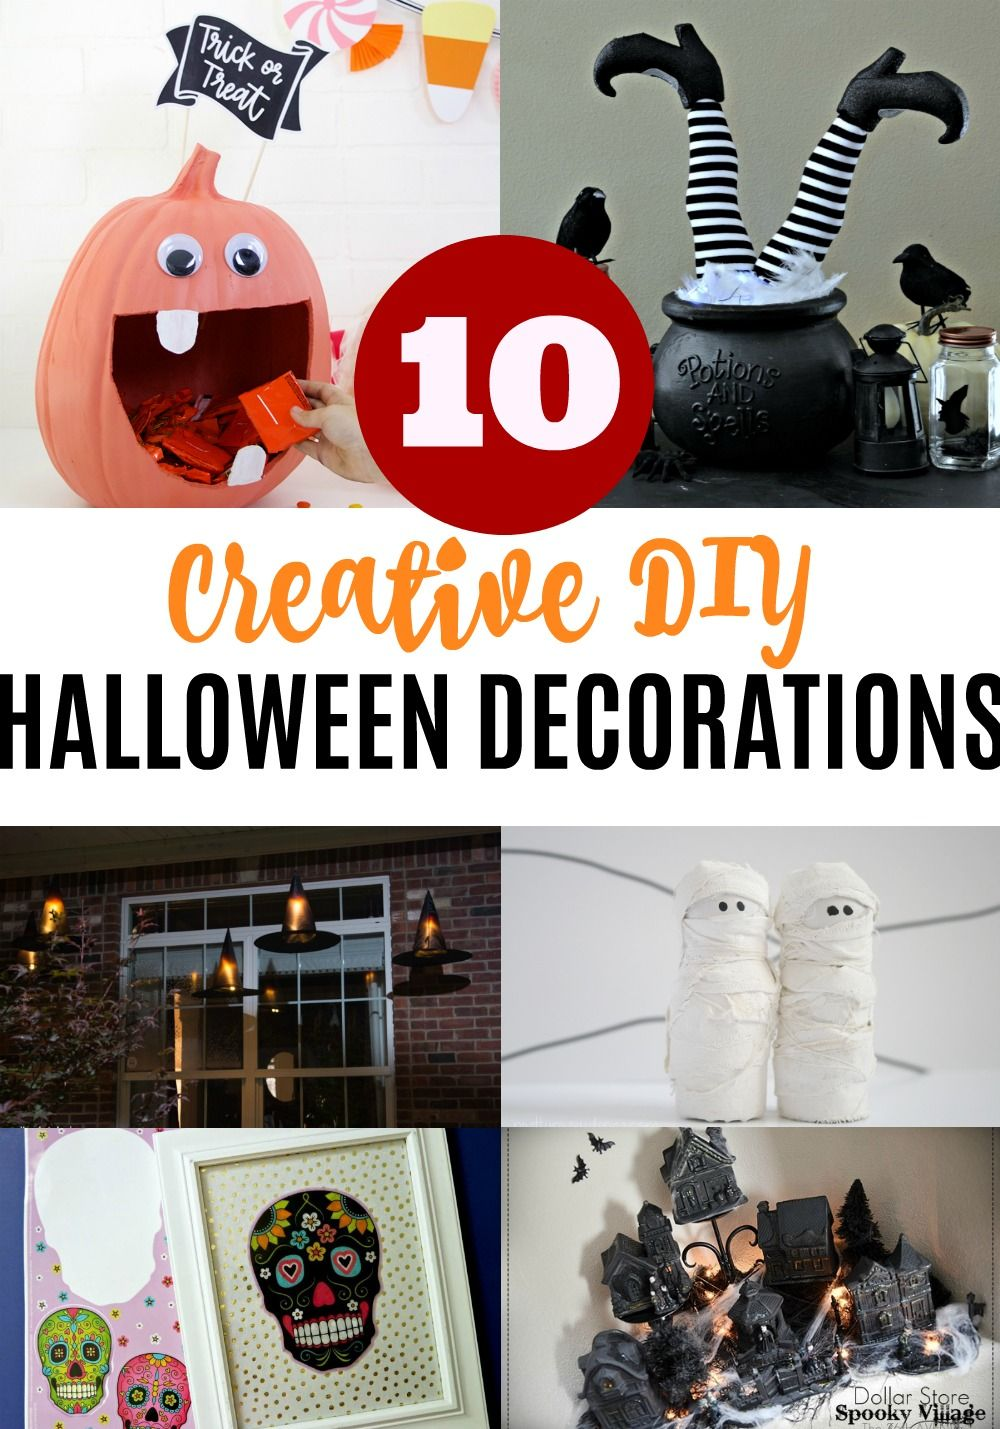 10 Creative DIY Halloween Decorations Pinterest DIY Halloween - halloween decorations diy